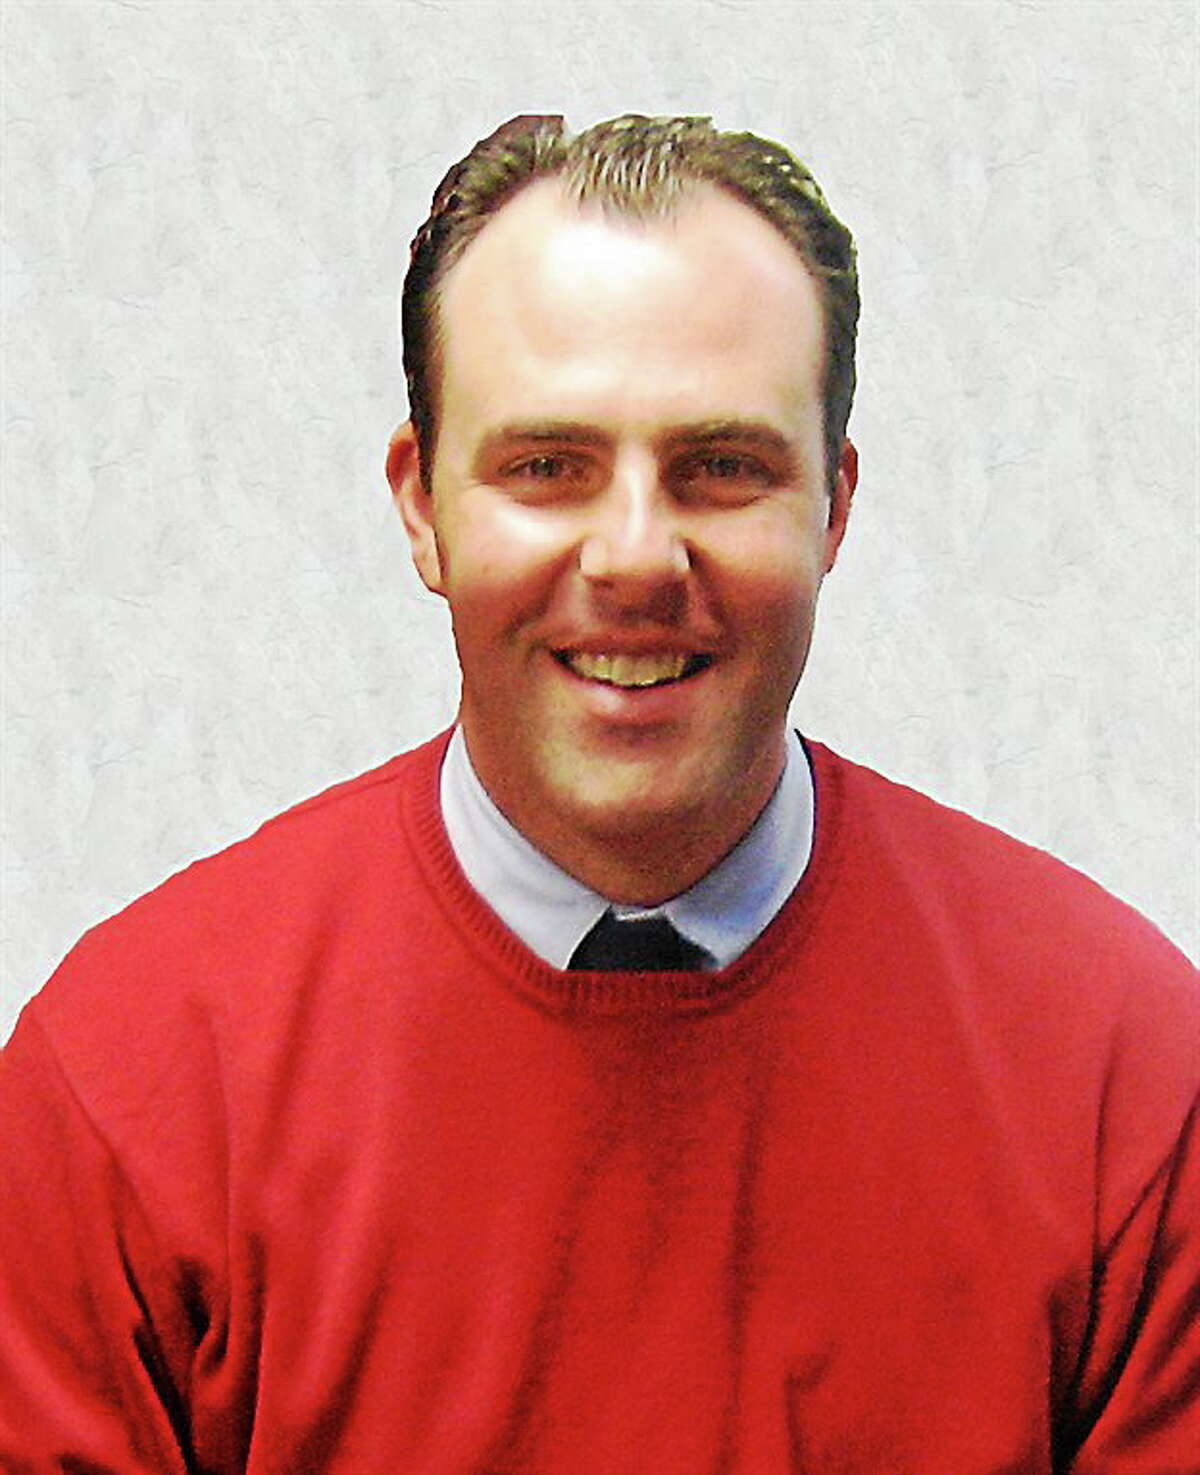 Gregory Brinn is the new director of advancement at Xavier High School in Middletown.